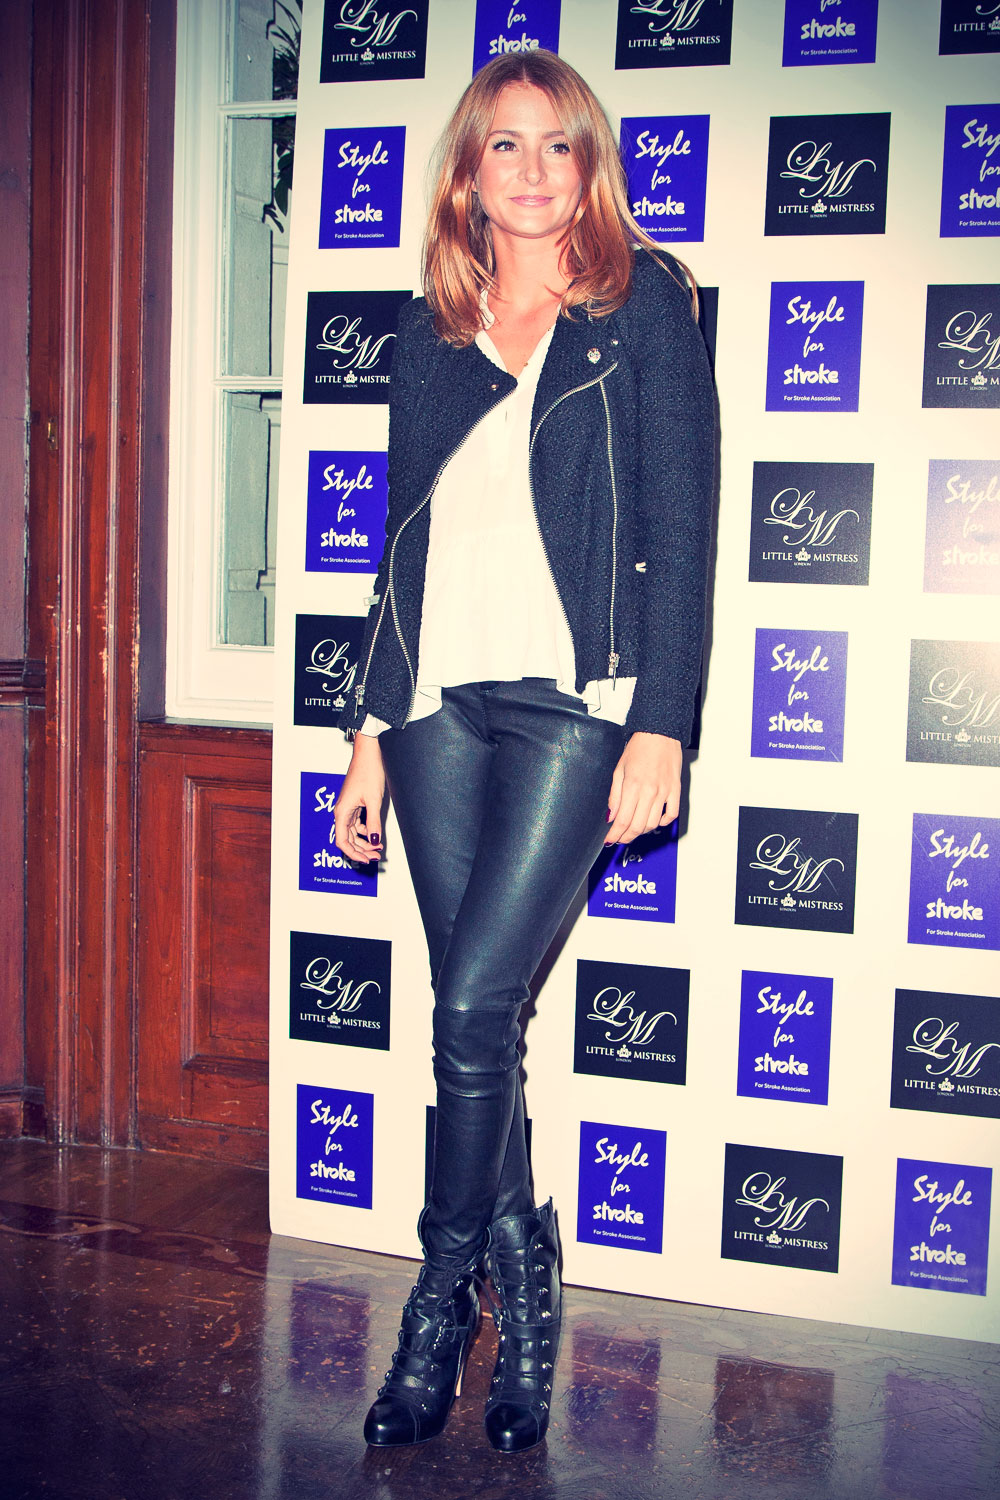 Millie Mackintosh The Style For Stroke launch party